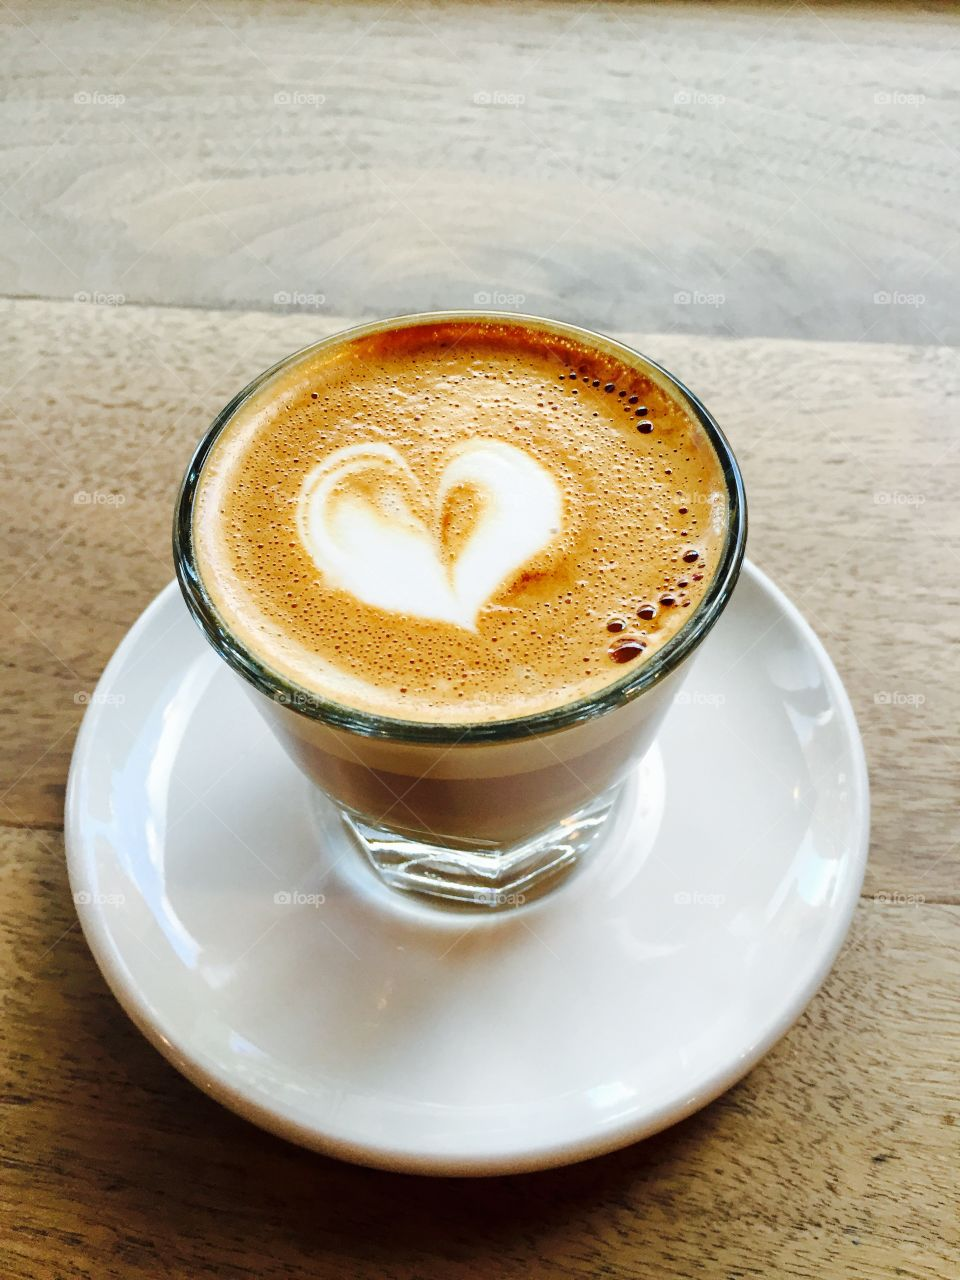 I orchestrate my mornings to the tune of coffee. ~Terri Guillemets